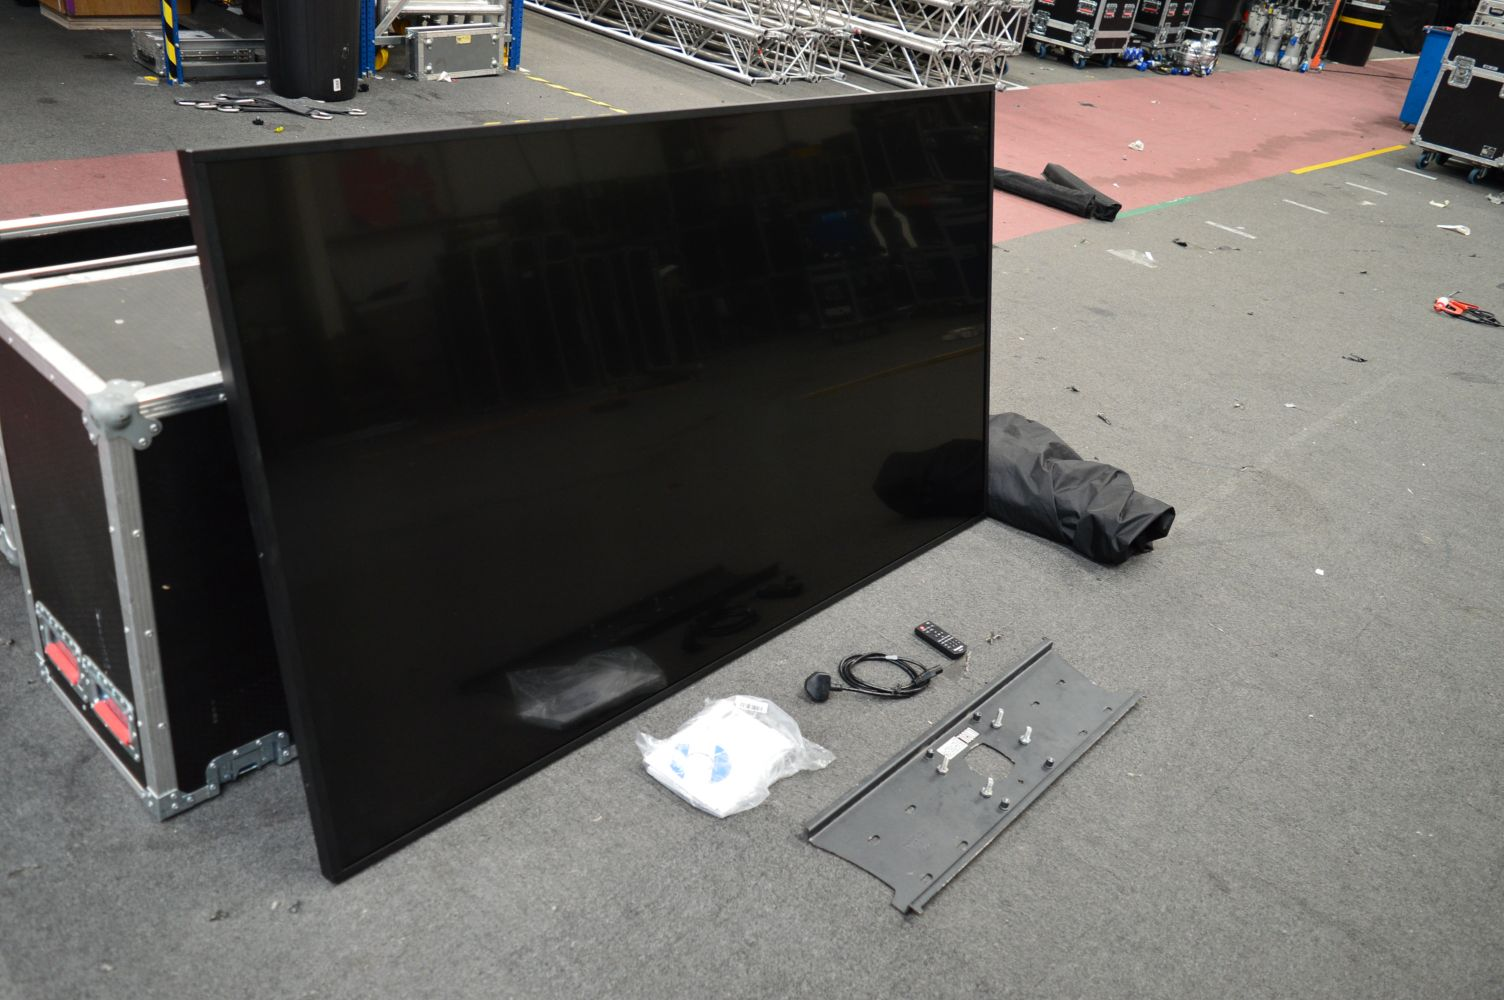 MCLCREATE: LARGE QUANTITY OF EX-HIRE AUDIO VISUAL ASSETS, GENERAL WAREHOUSE EQUIPMENT, OFFICE FURNITURE & I.T.